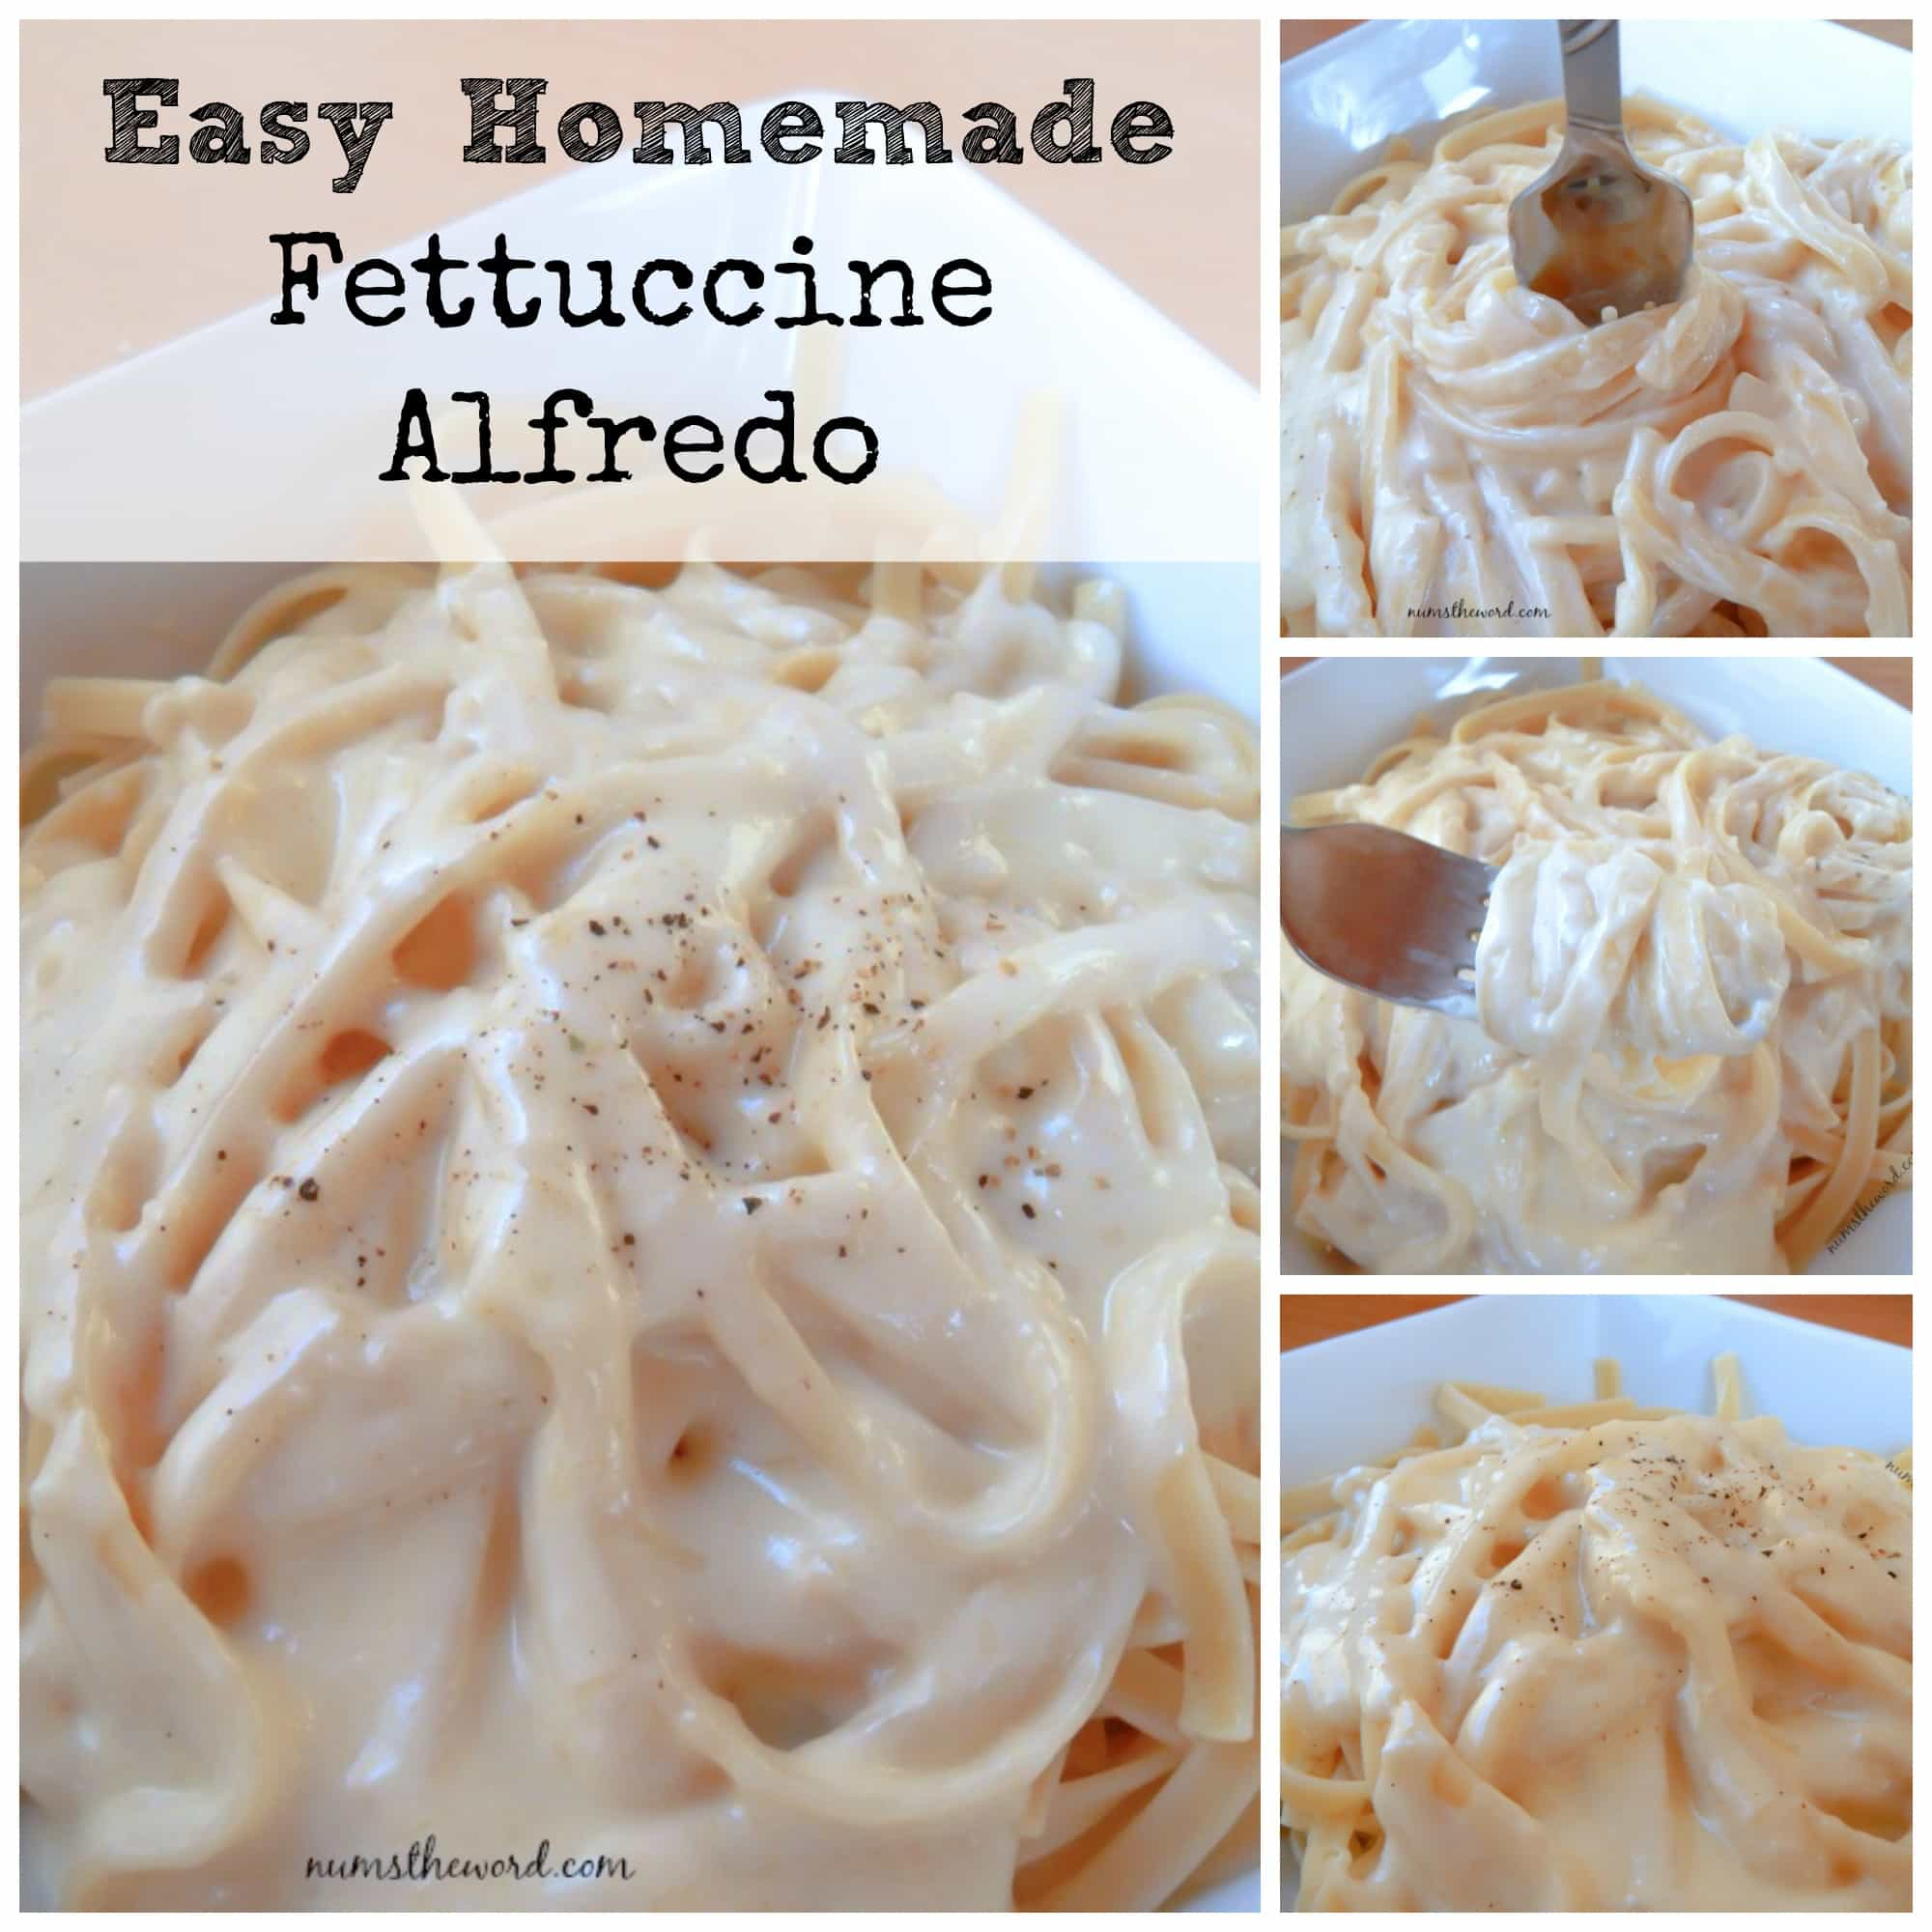 Easy fettuccine alfredo with heavy cream